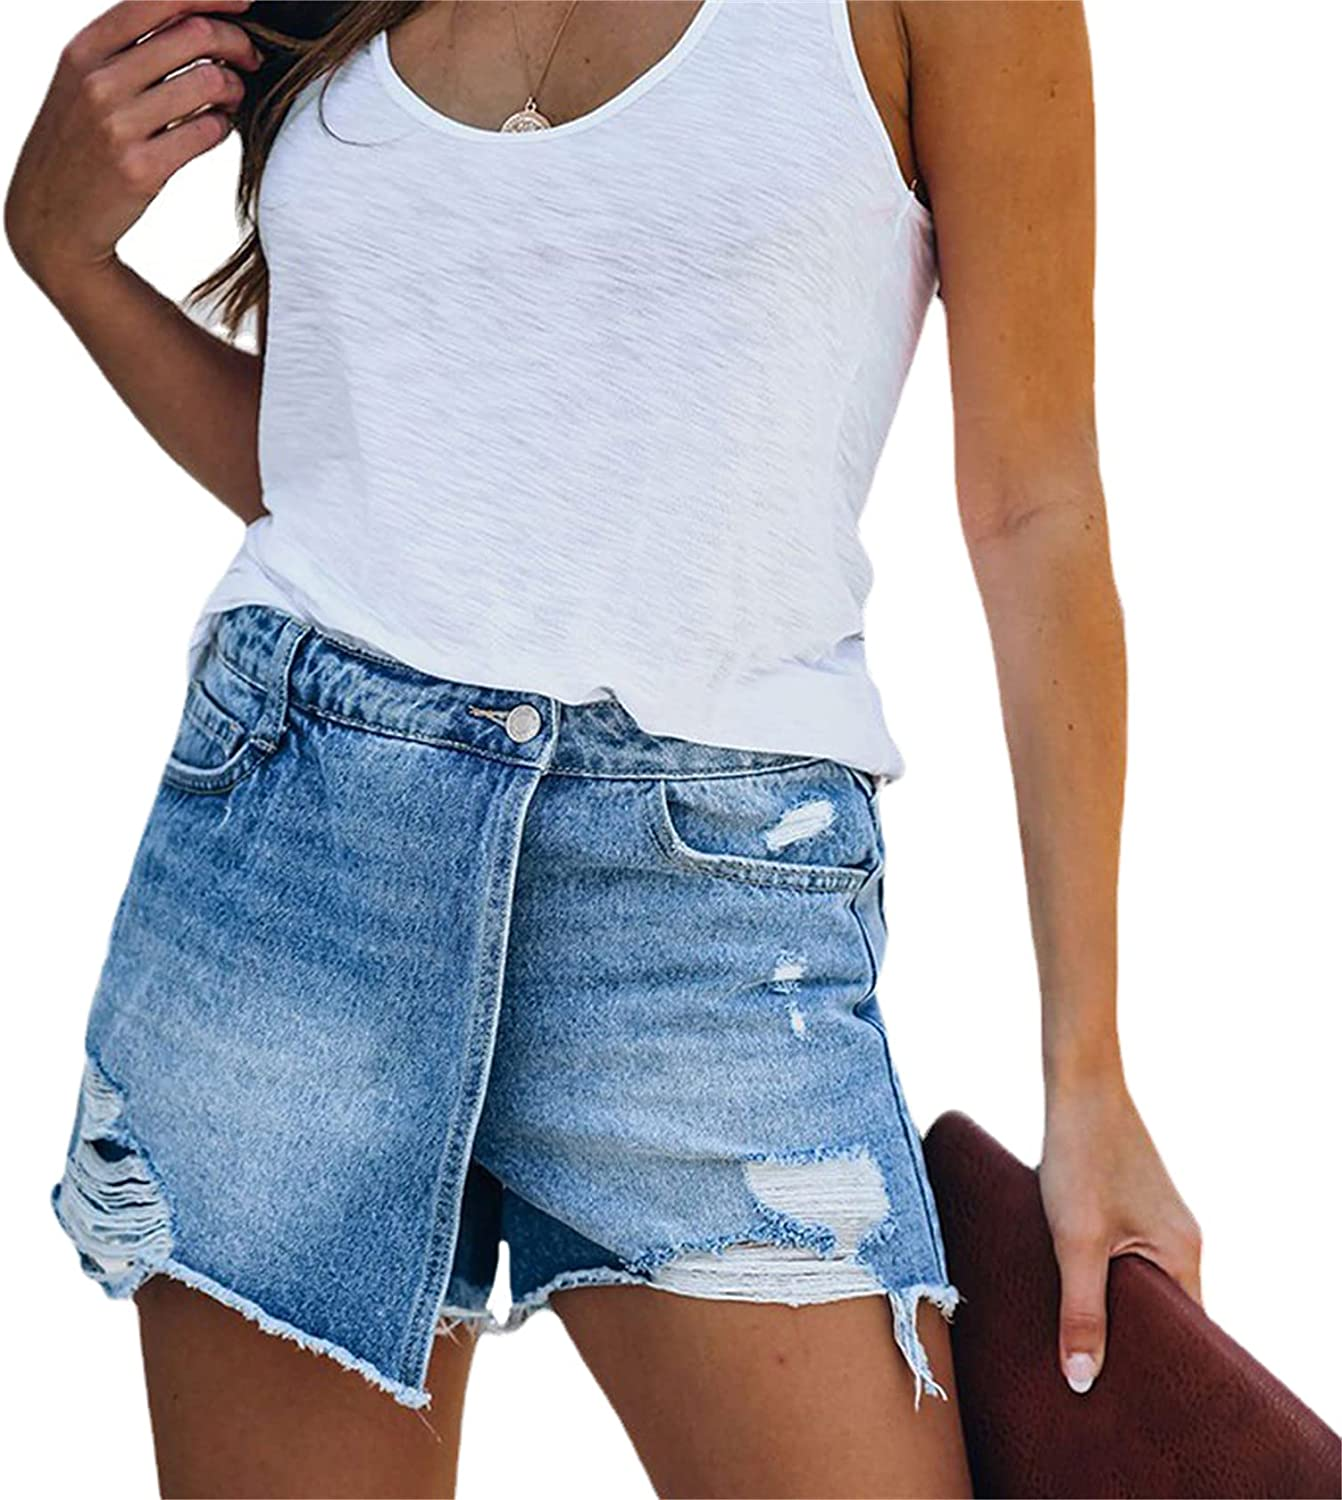 Andongnywell Womens Mid Waisted Denim Shorts Distressed Frayed Raw Folded Hem Short Jeans Destroyed Washed Jean Shorts